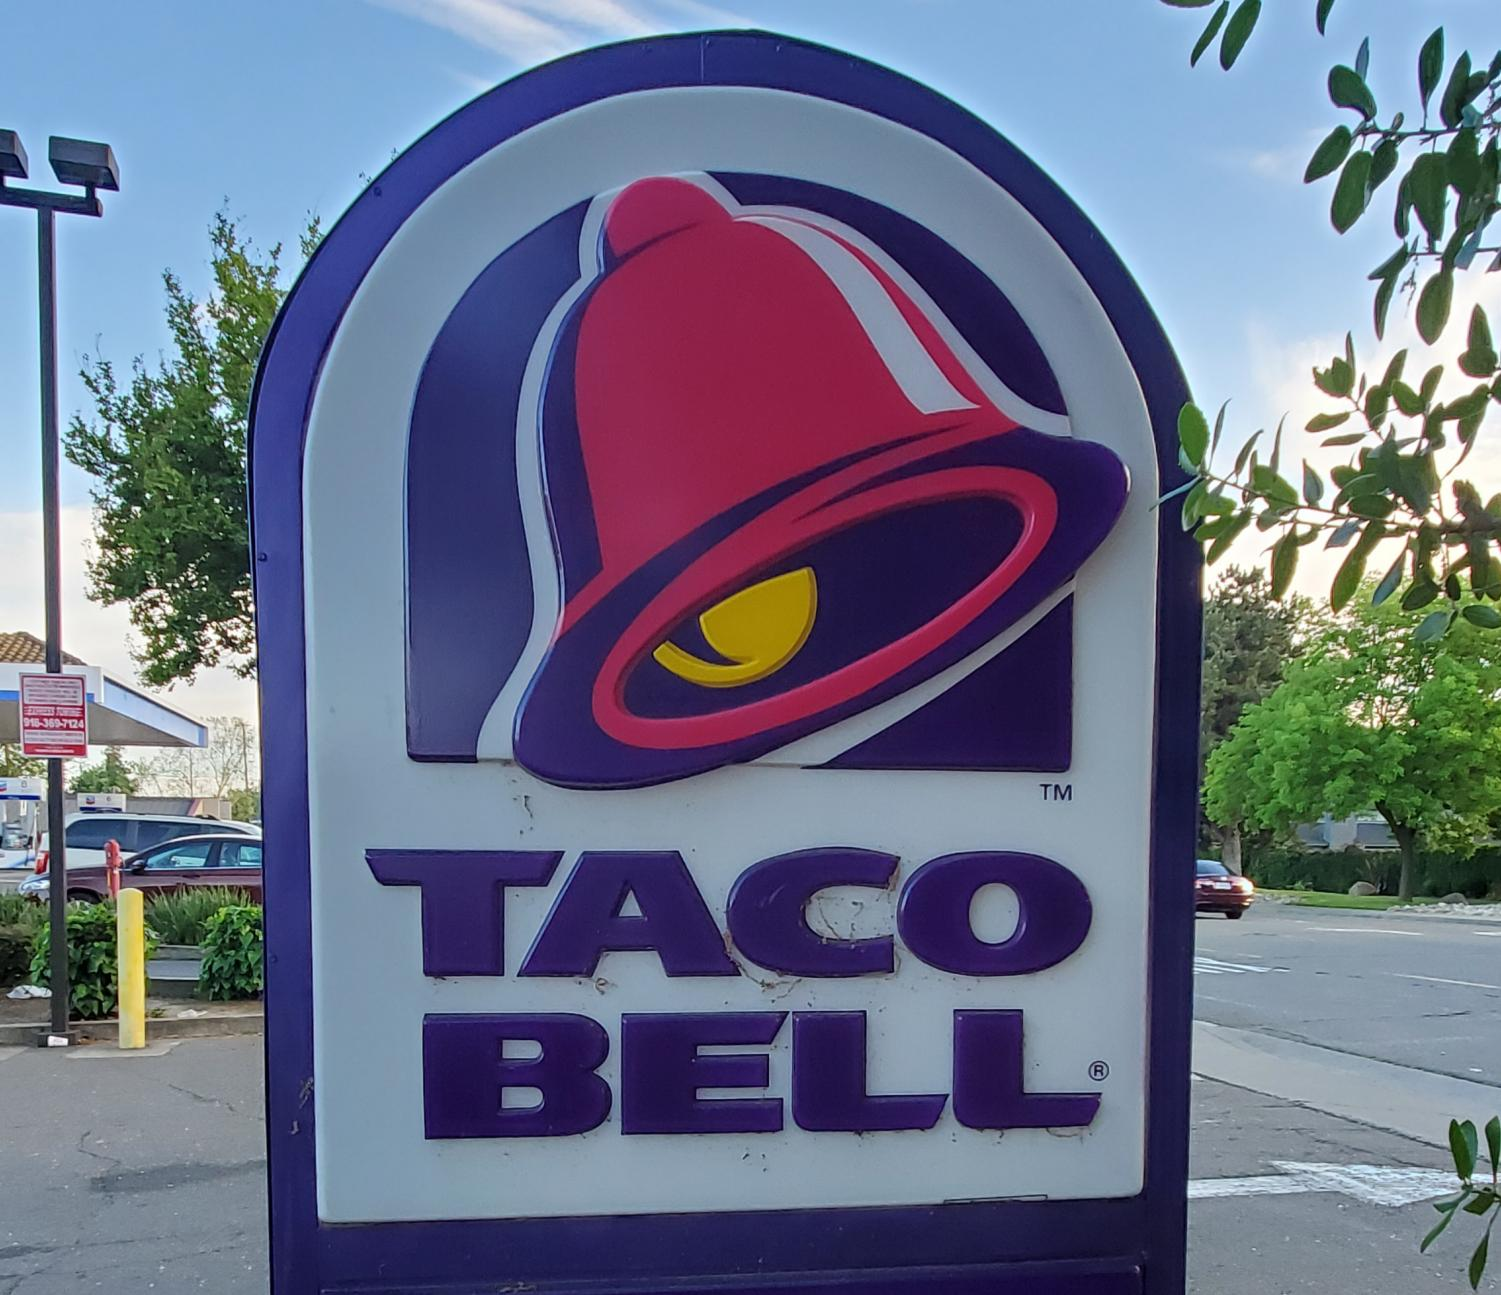 In 1994, a vote was taken by the Sacramento State Foundation's Board of Directors on whether a Taco Bell should have been added to campus. Students of MEChA were against bringing the restaurant to campus, as in their defense, Taco Bell was promoting an anti-immigration slogan.